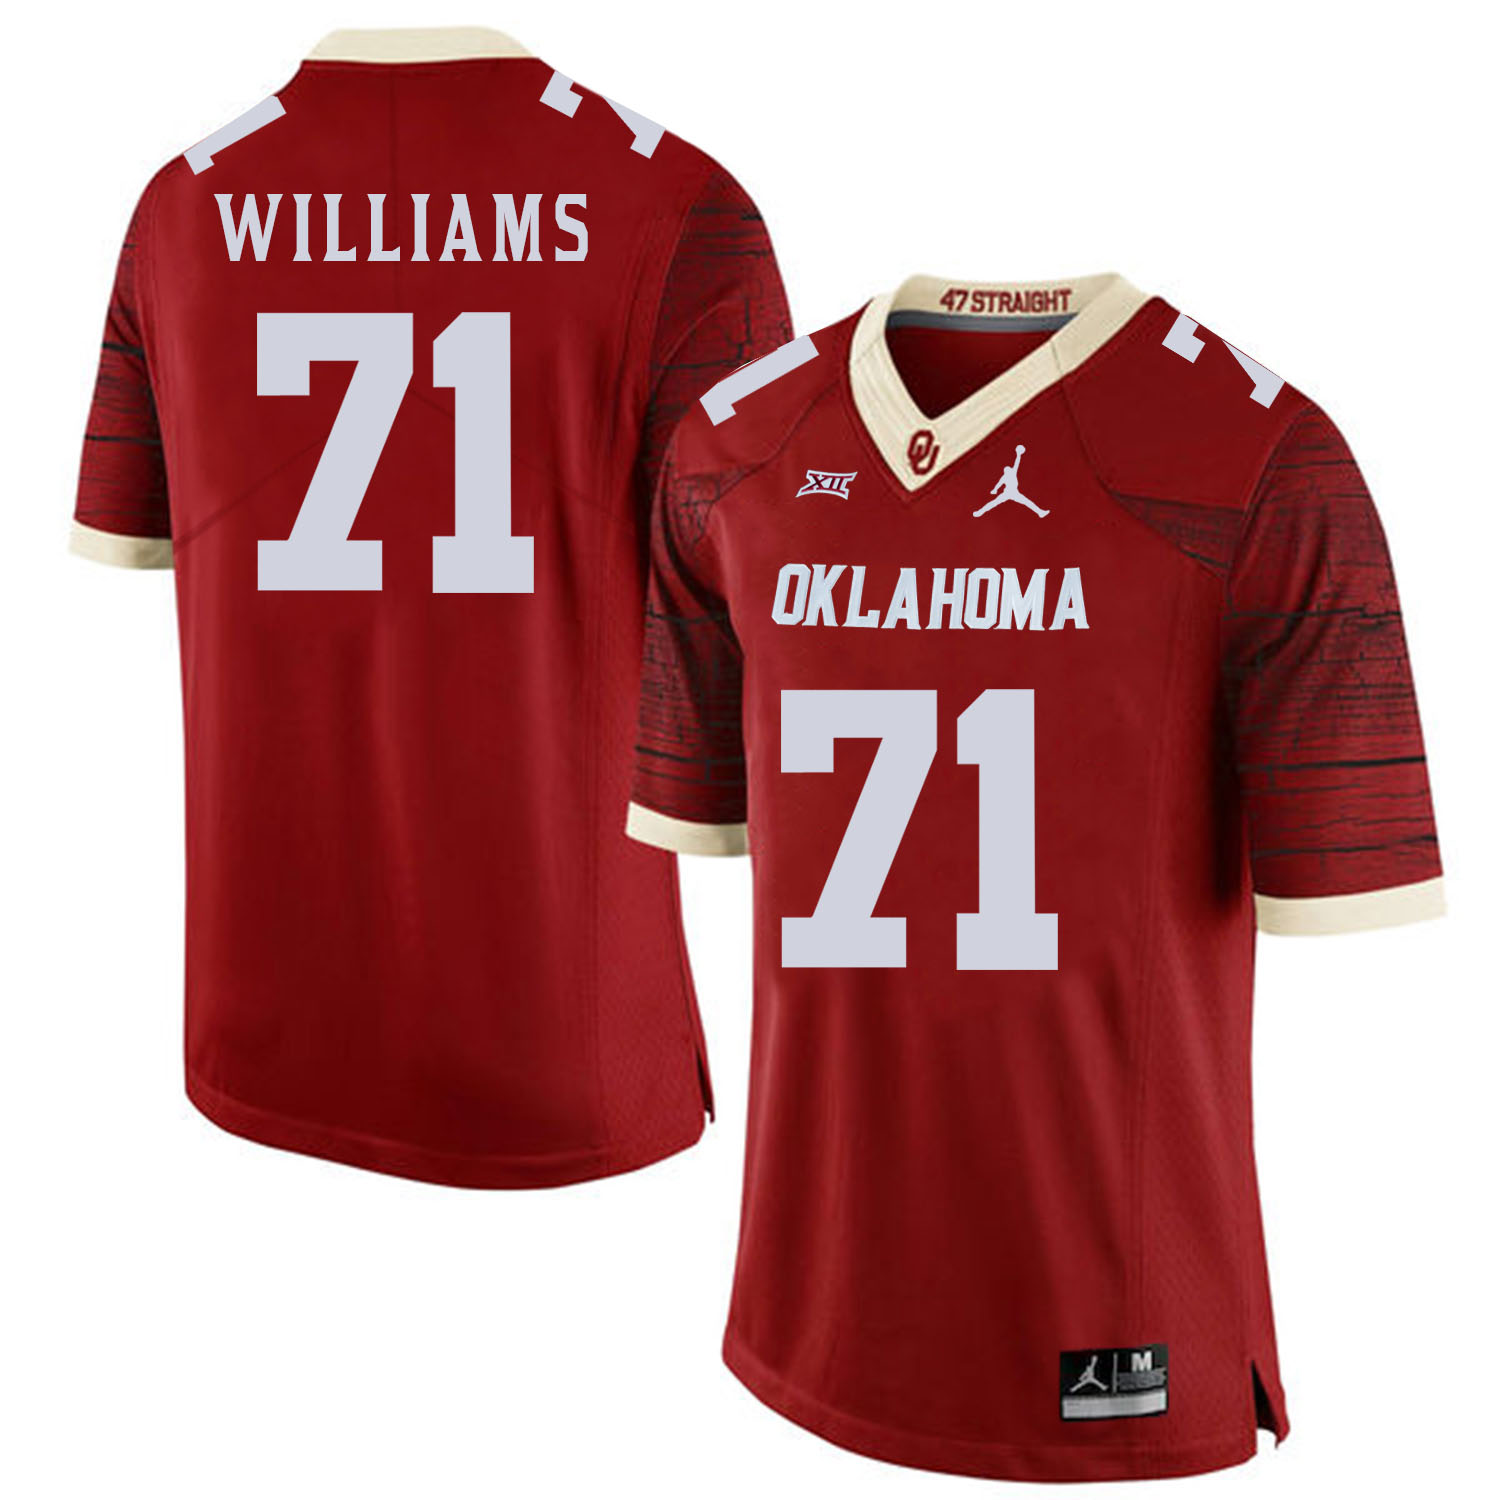 Oklahoma Sooners 71 Trent Williams Red 47 Game Winning Streak College Football Jersey